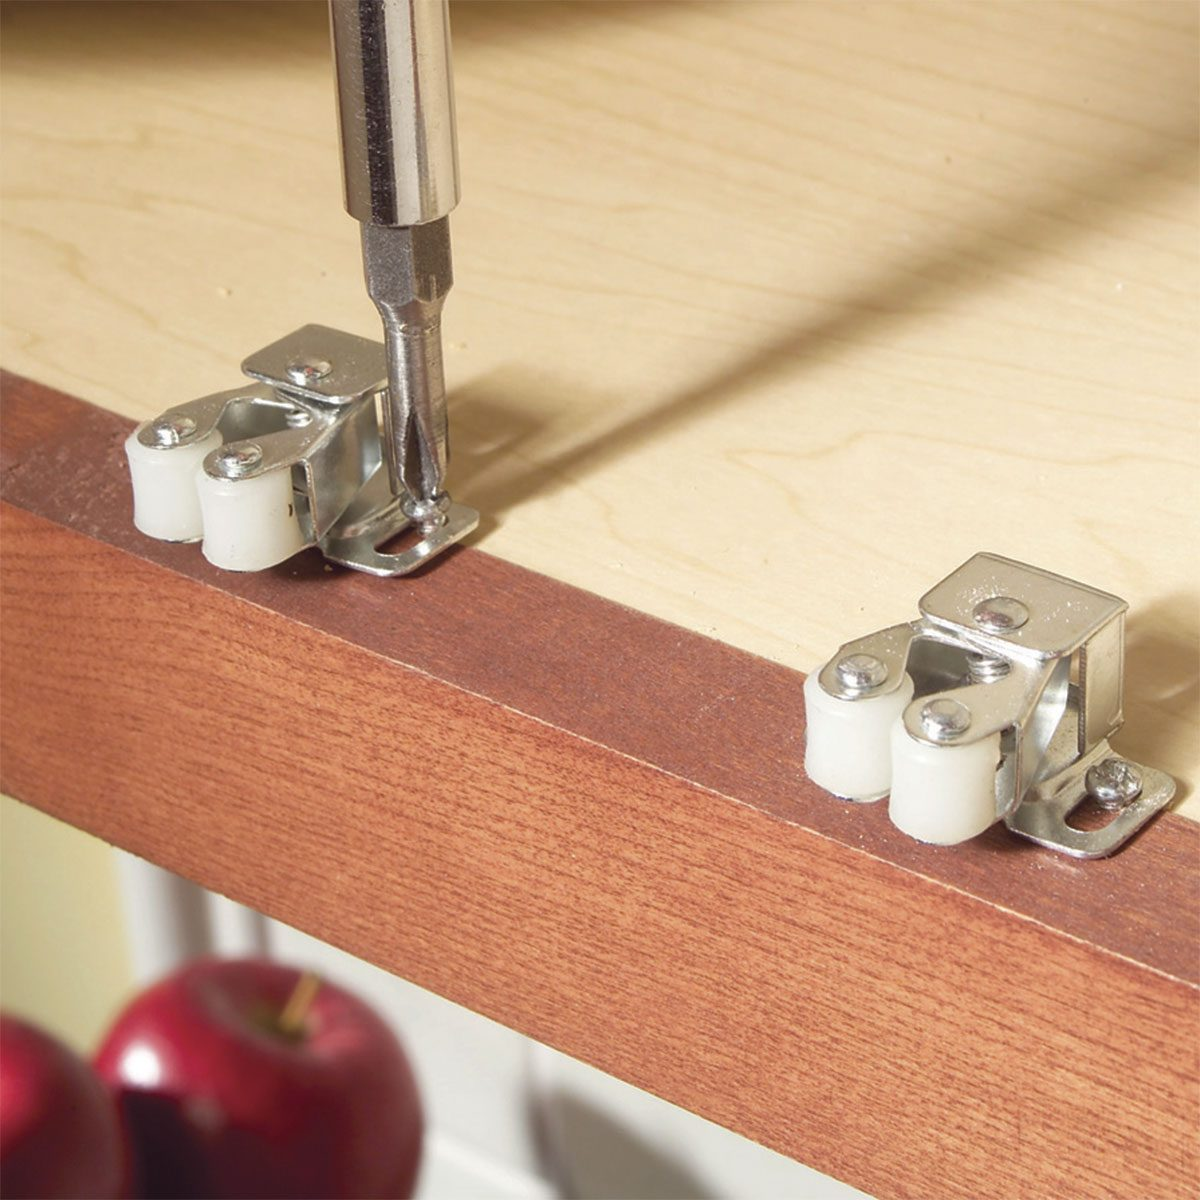 Fix Misaligned Cabinet Latches